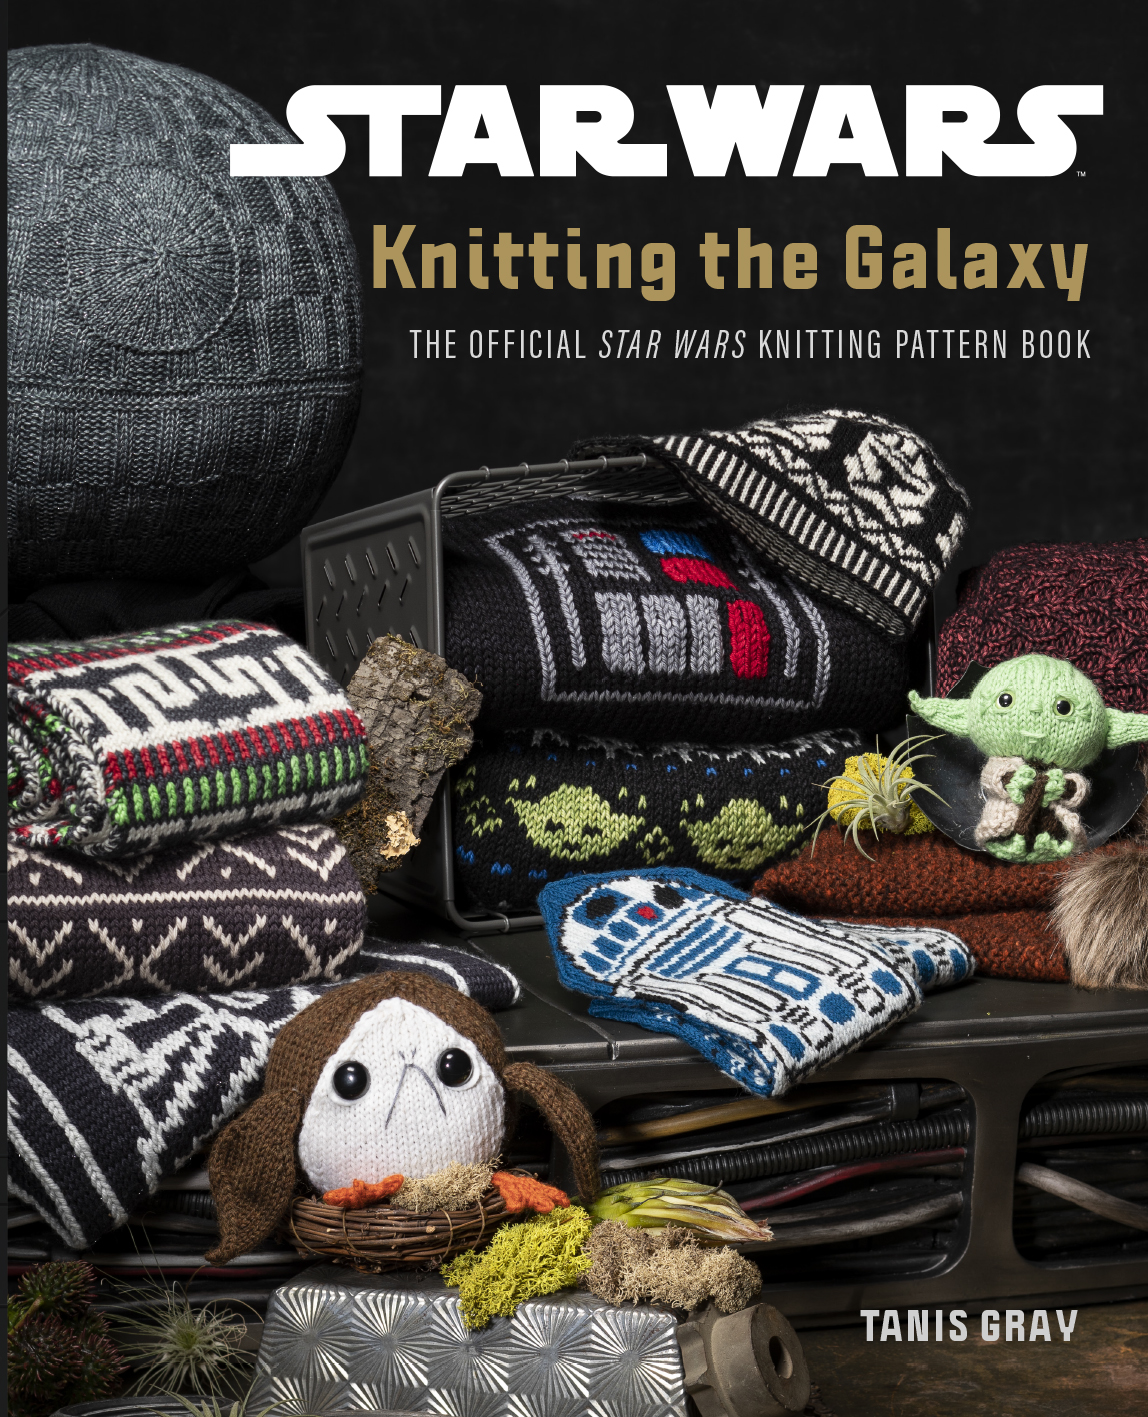 Star Wars: Knitting the Galaxy